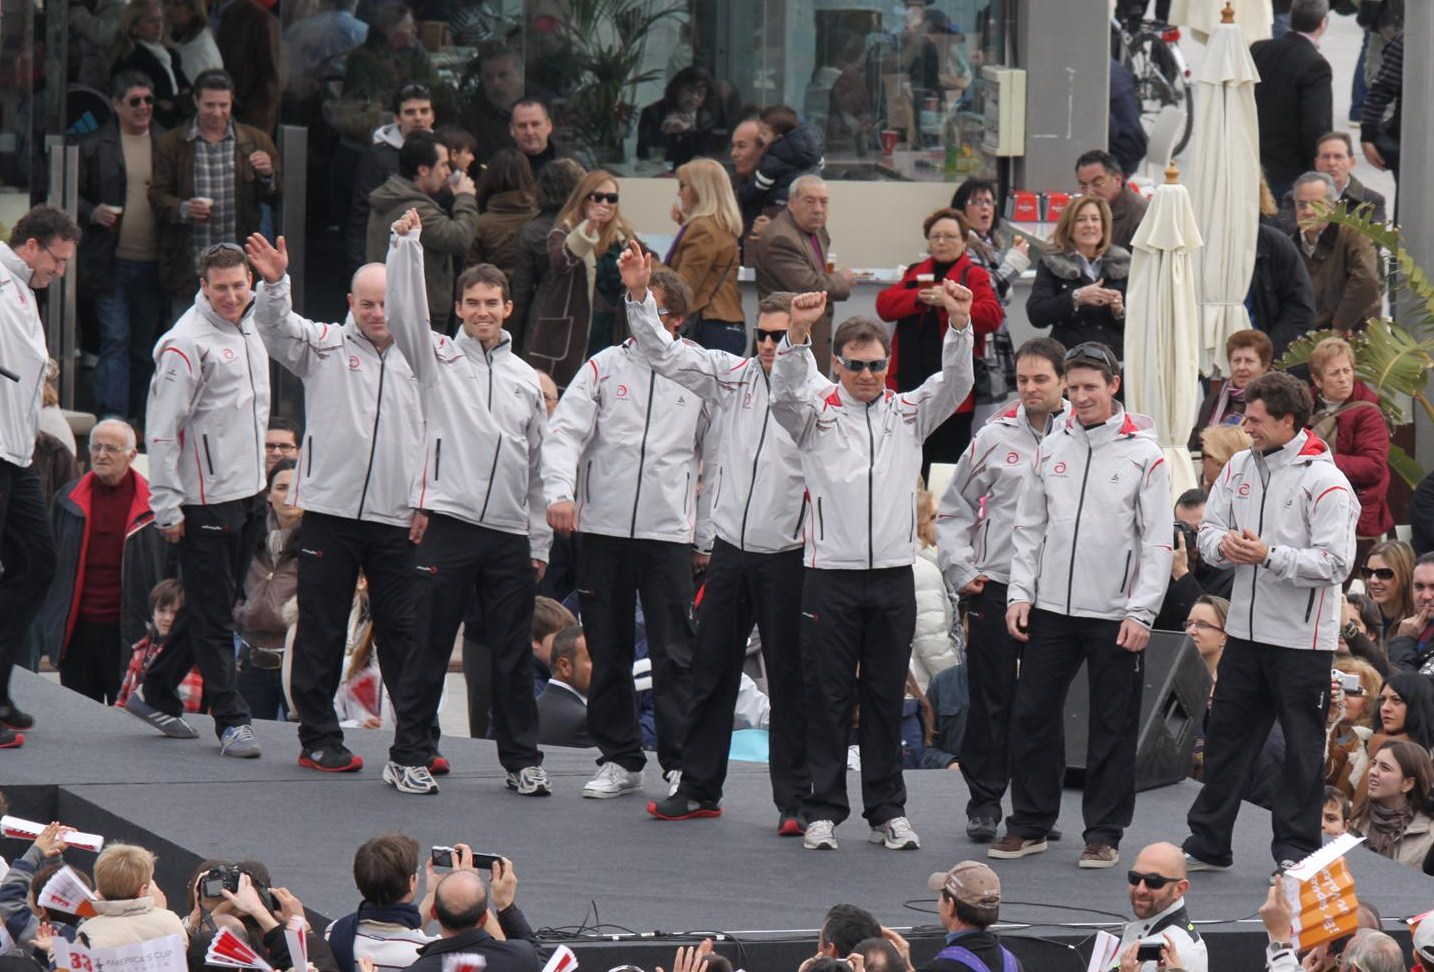 Team Alinghi (Photo by Gareth Evans)